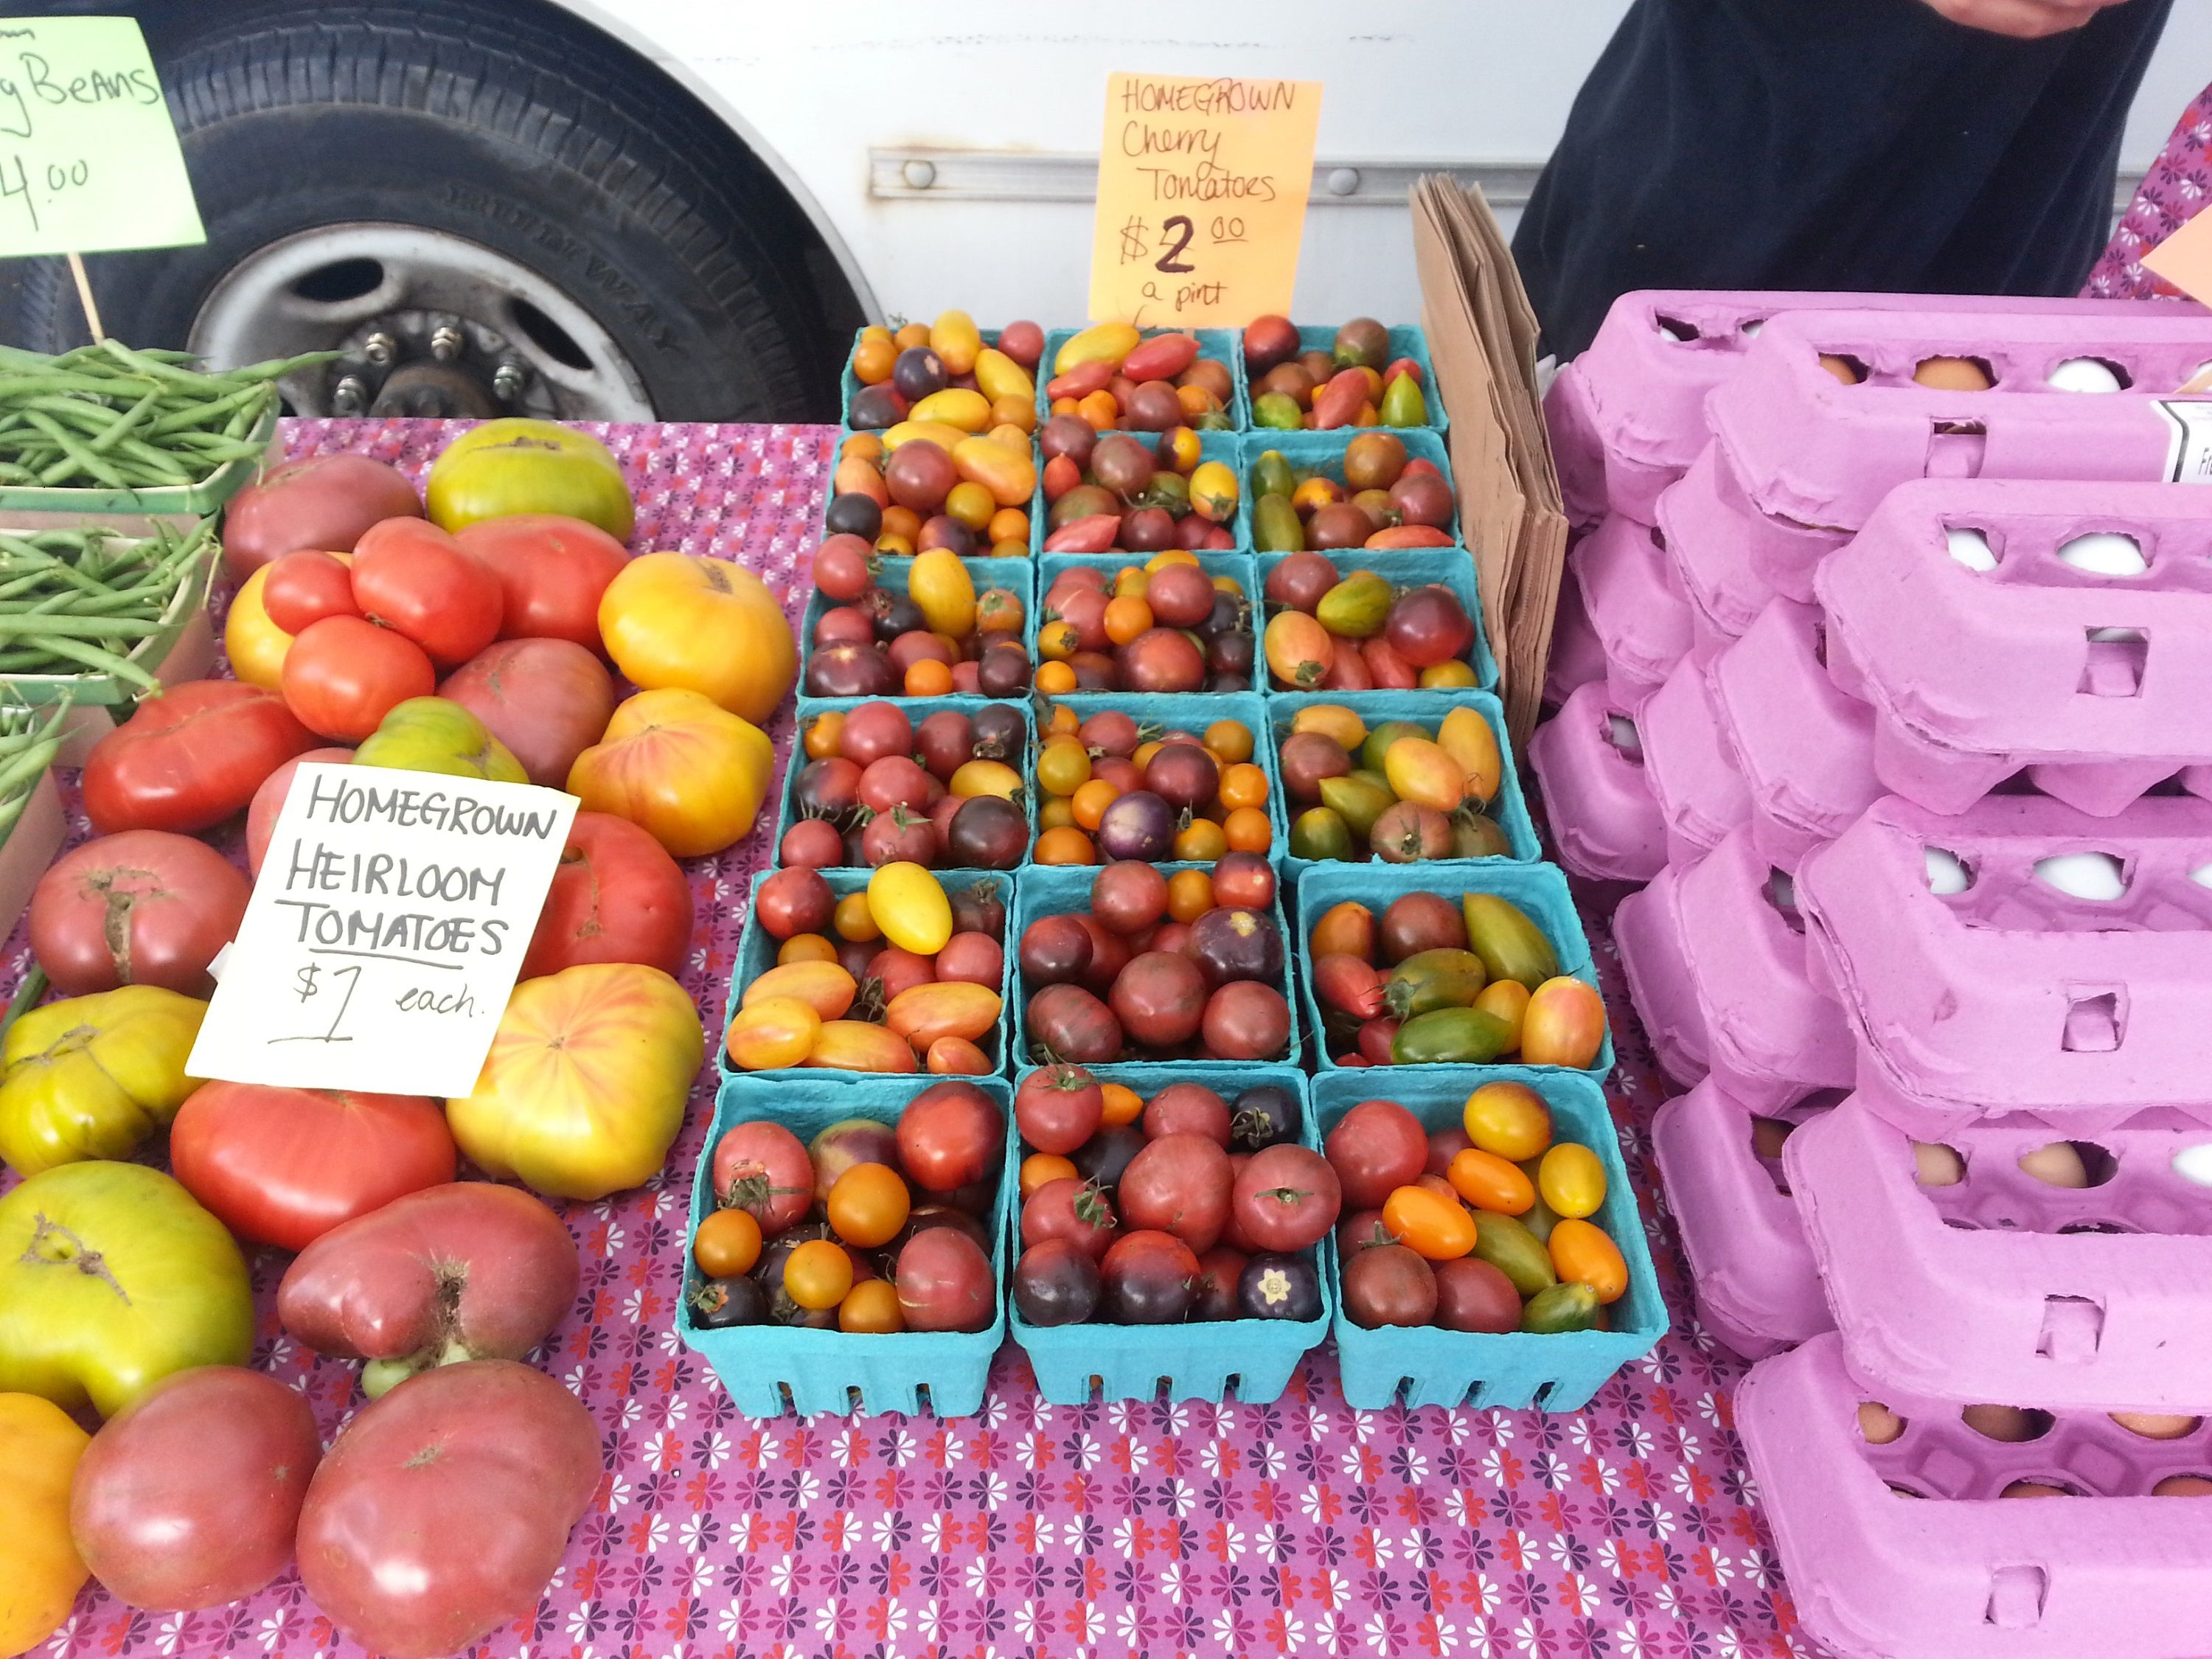 Peekskill-Farmers-Market-Heirloom-Tomatoes_300dpi-(2).jpg